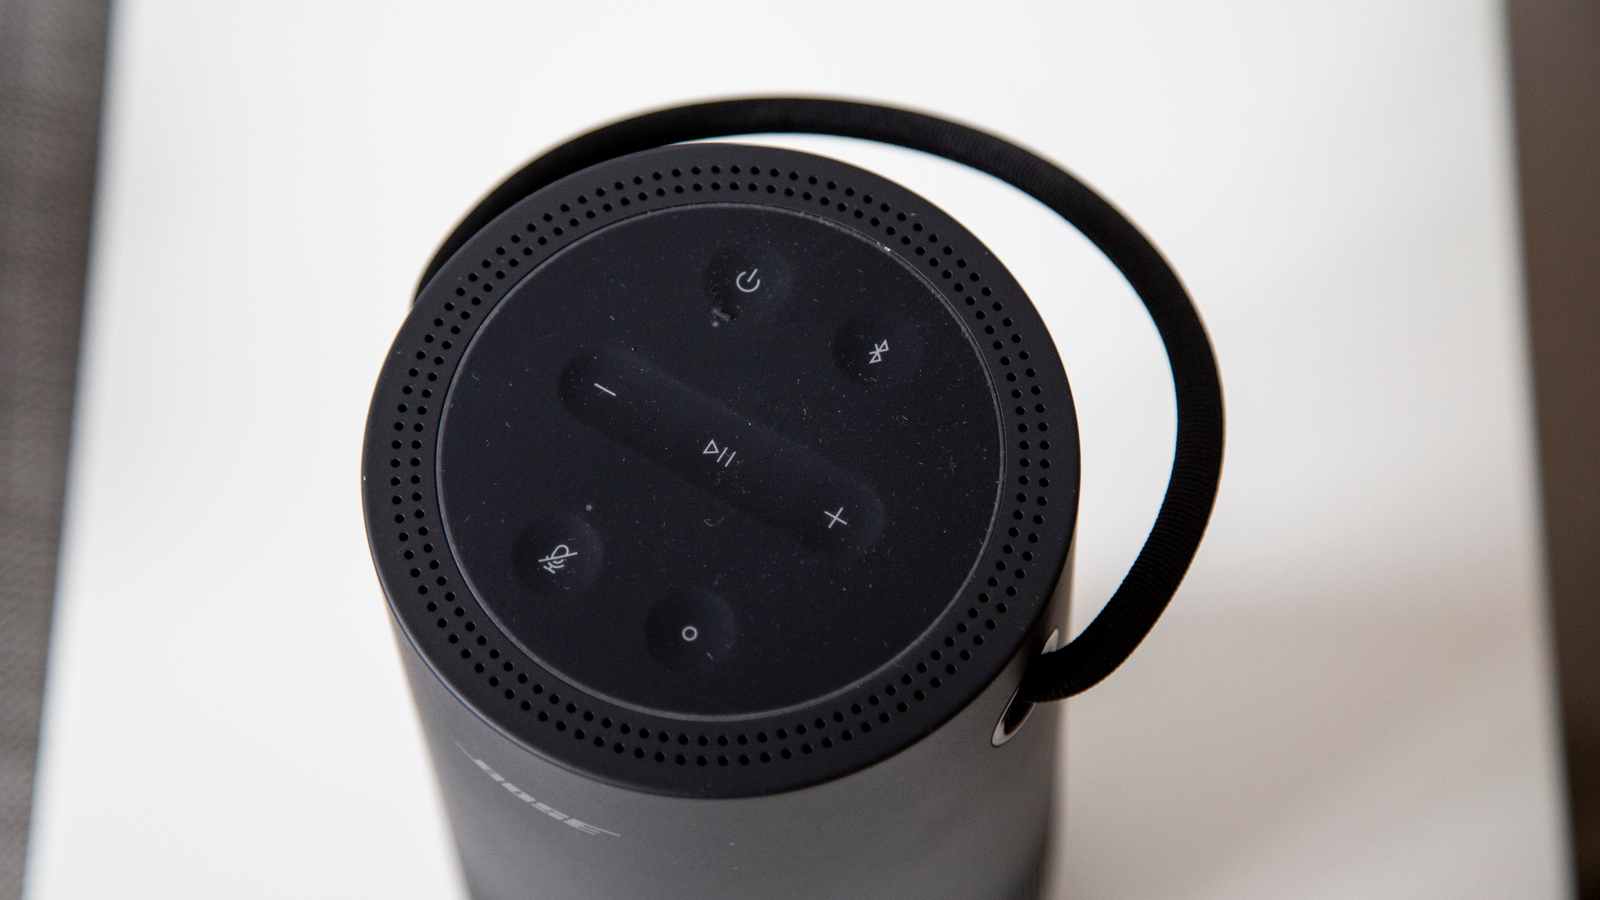 The top of the Bose Portable Home Speaker has many buttons.